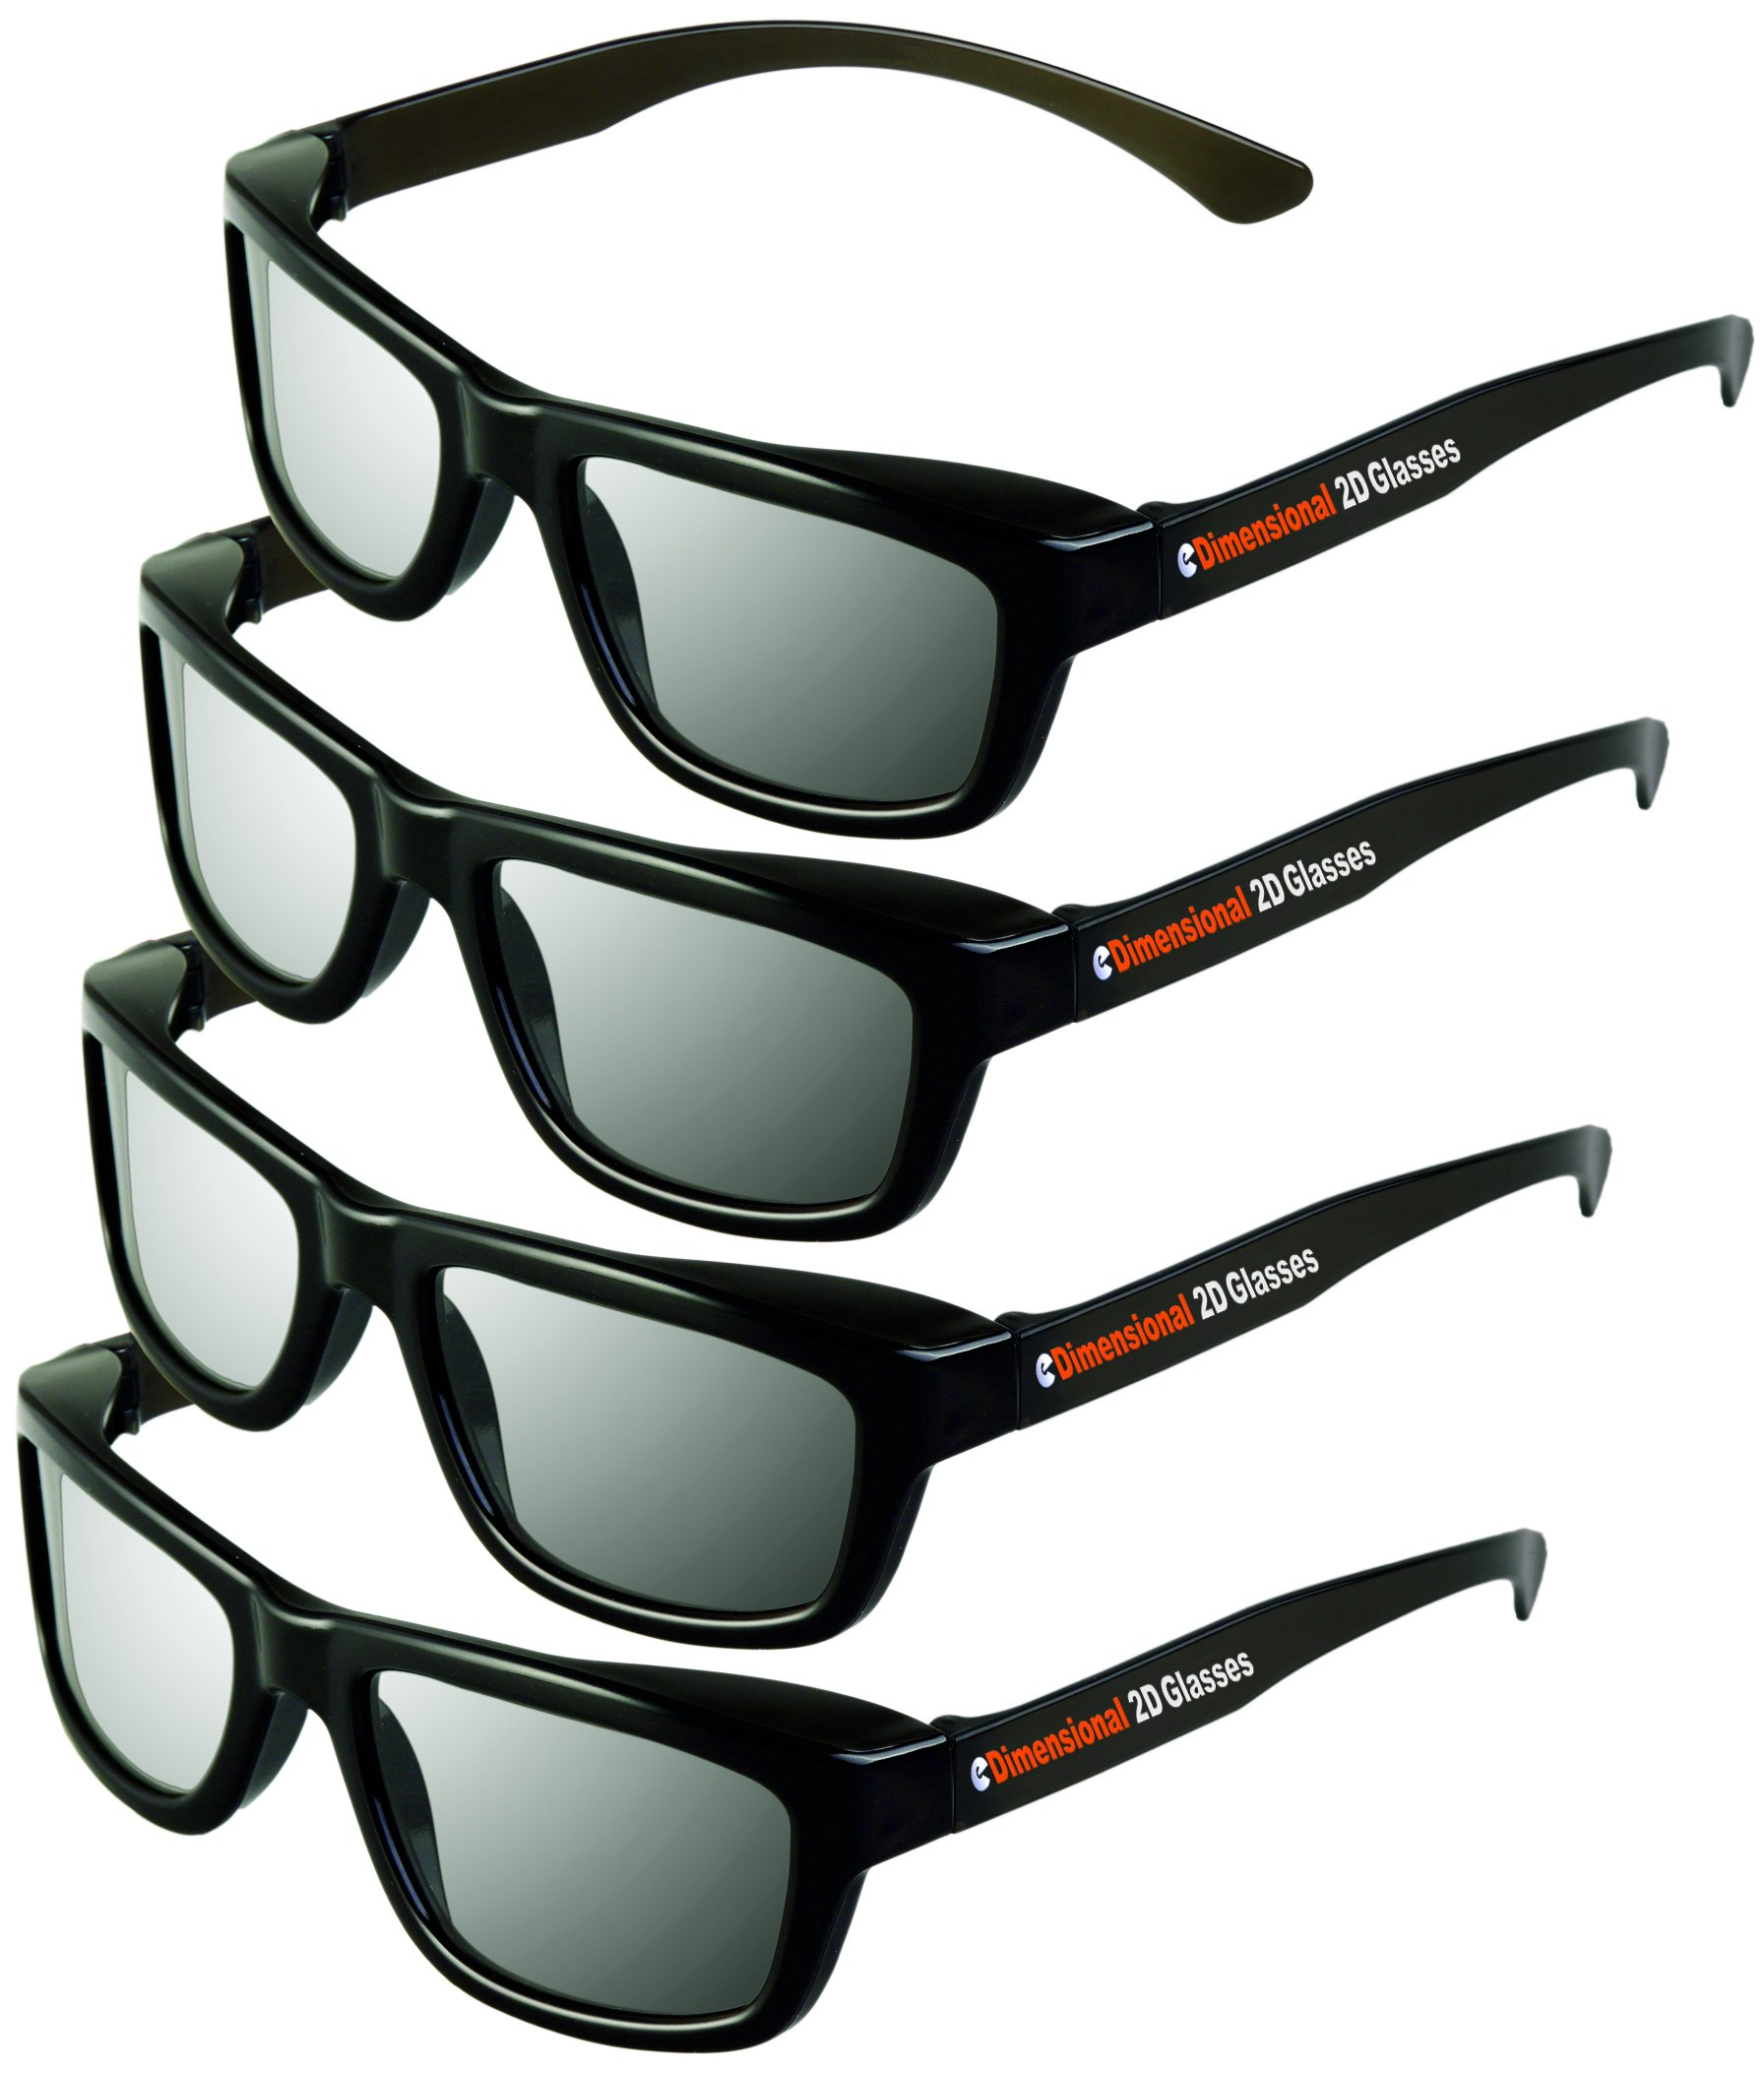 2D Glasses 4 Pack - Turns 3D movies back into 2D - eDimensional 4 Pairs for passive 3D Televisions and for use in RealD 3D Theaters by eDimensional